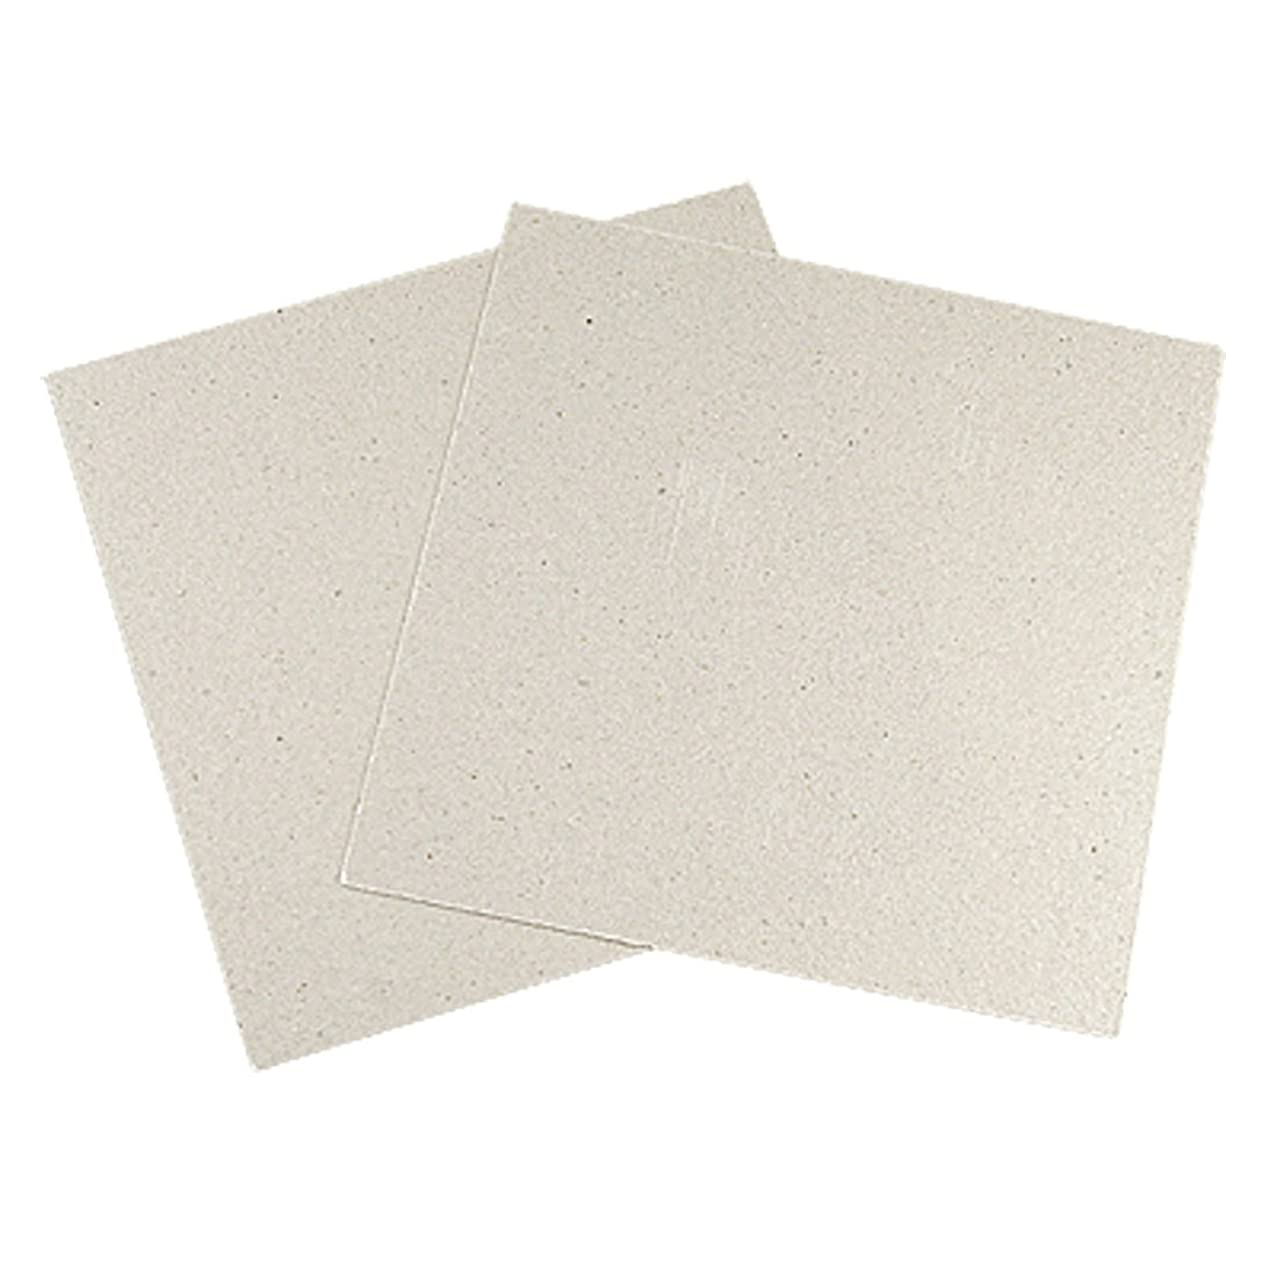 uxcell Mica Plates Replacement for Microwave Oven 12 x 12cm 2 Pcs